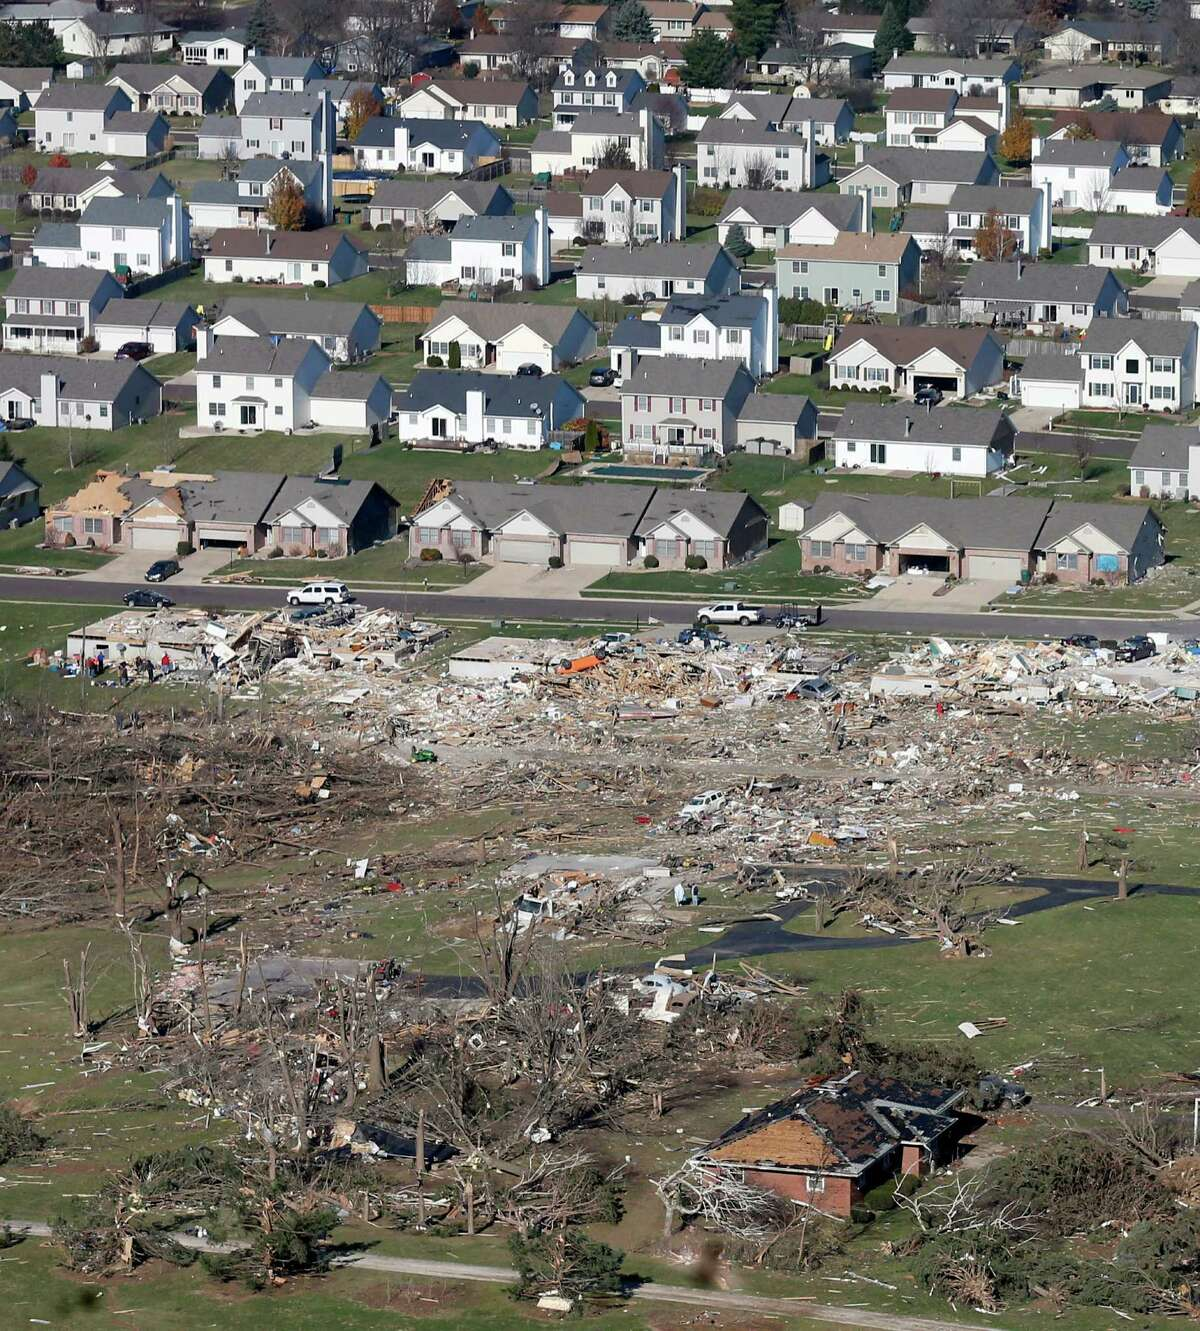 This aerial view on Monday, Nov. 18, 2013, shows untouched homes and homes destroyed by a tornado that hit the western Illinois town of Washington on Sunday. It was one of the worst-hit areas after intense storms and tornadoes swept through Illinois. The National Weather Service says the tornado that hit Washington had a preliminary rating of EF-4, meaning wind speeds of 170 mph to 190 mph. (AP Photo/Charles Rex Arbogast) ORG XMIT: ILCA105